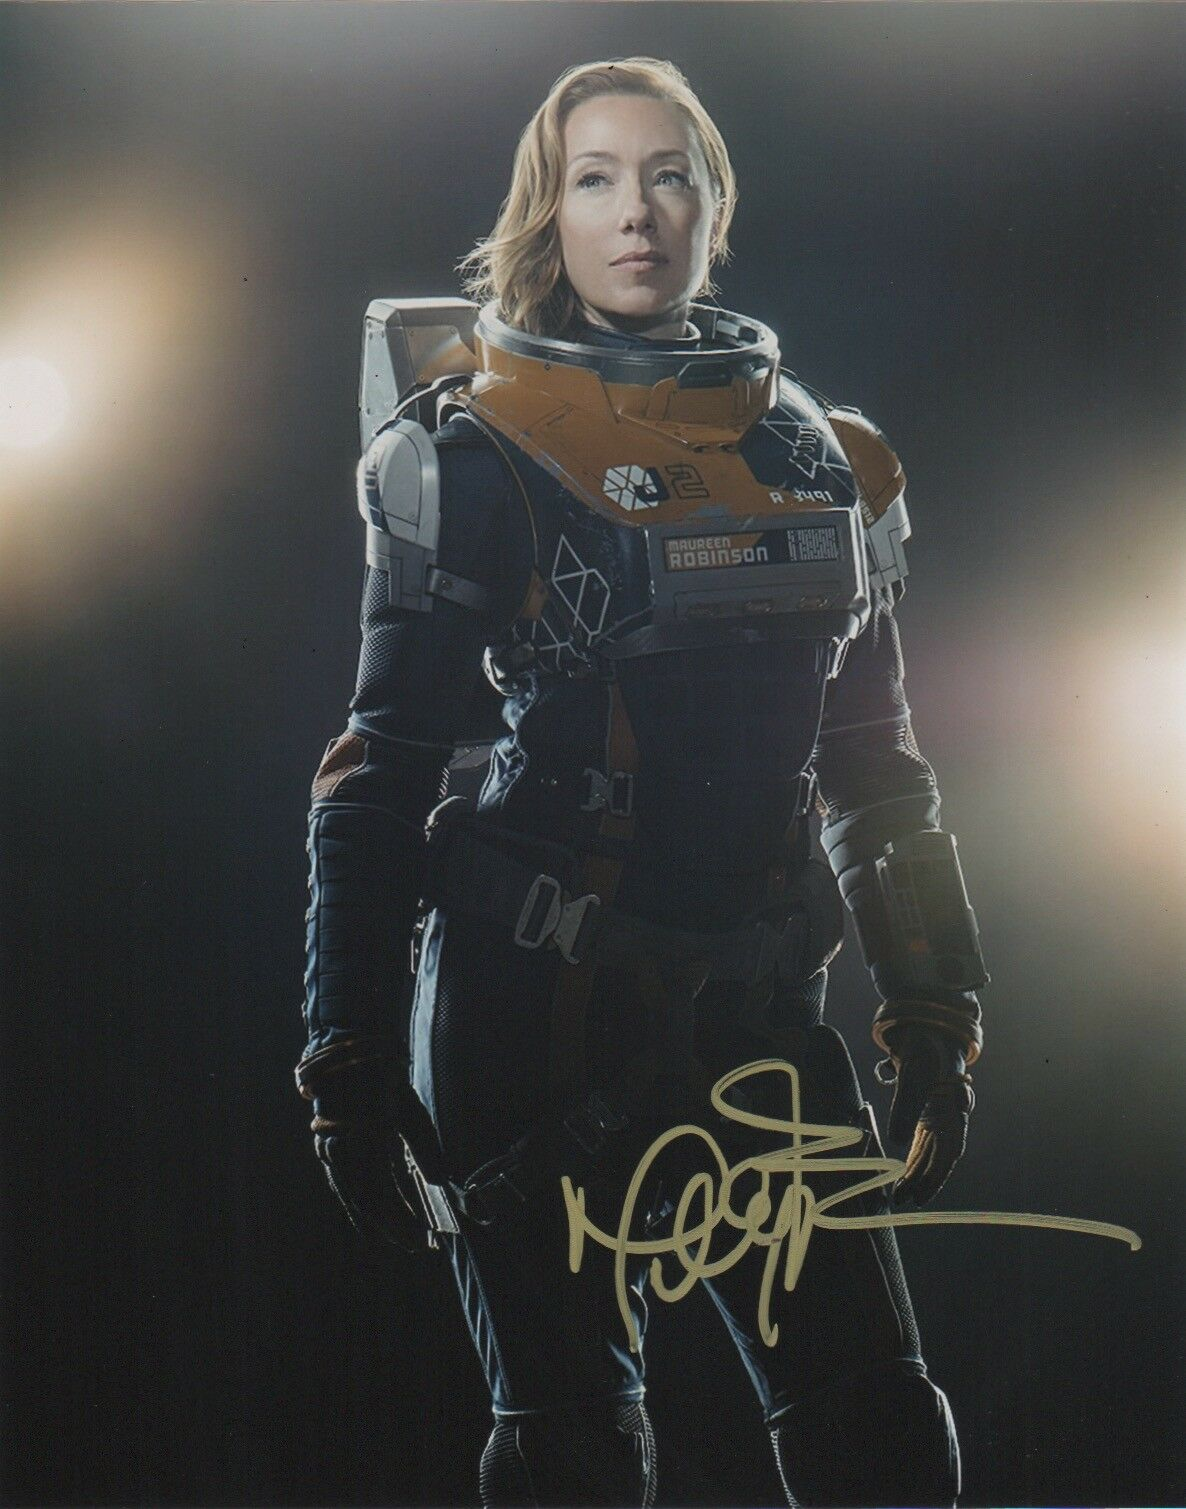 Molly Parker Lost in Space Signed Autograph 8x10 Photo - Outlaw Hobbies Authentic Autographs